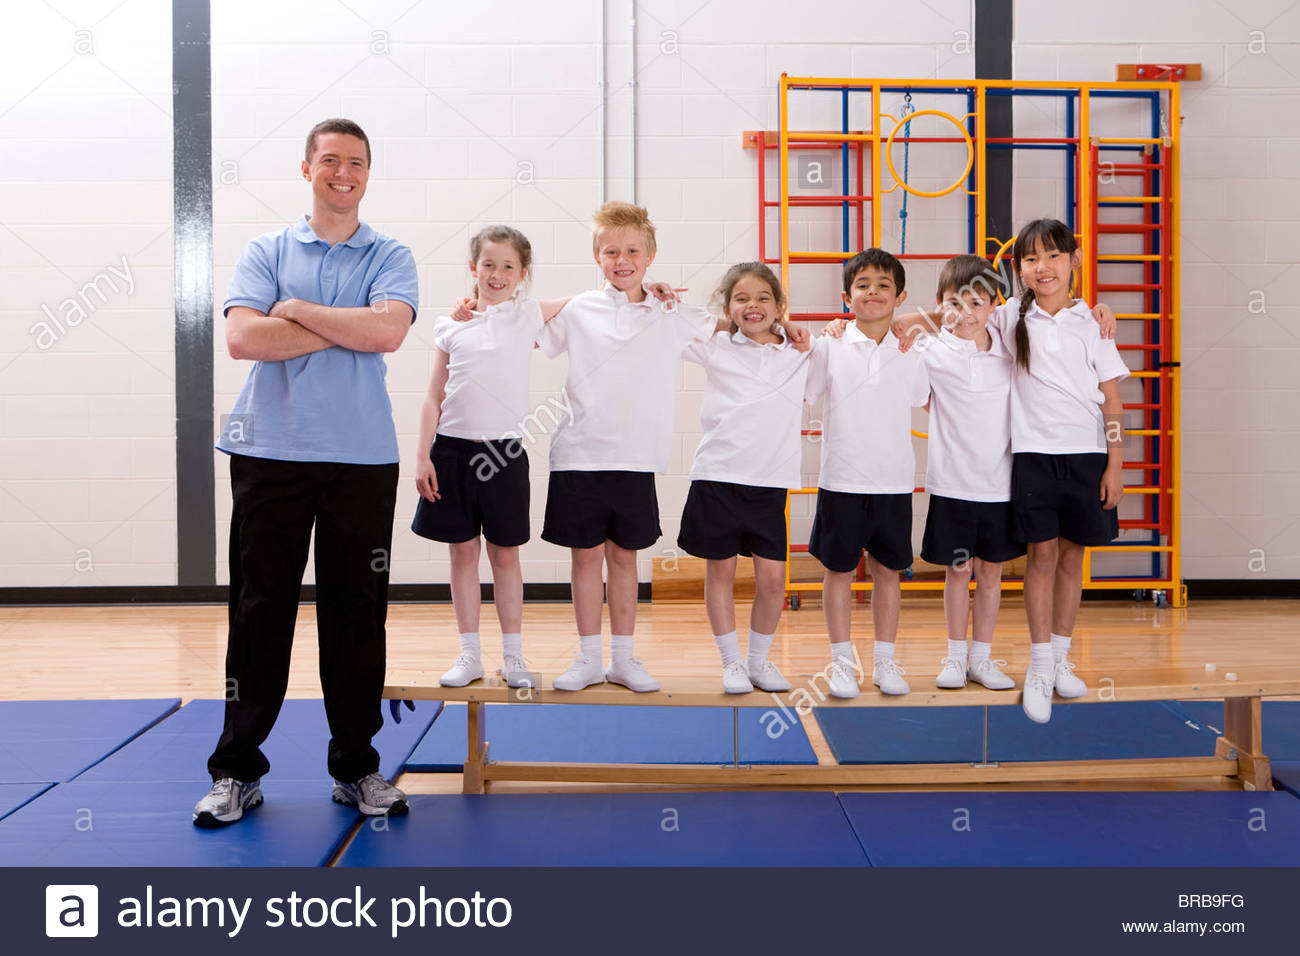 Smiling gym teacher and school children in